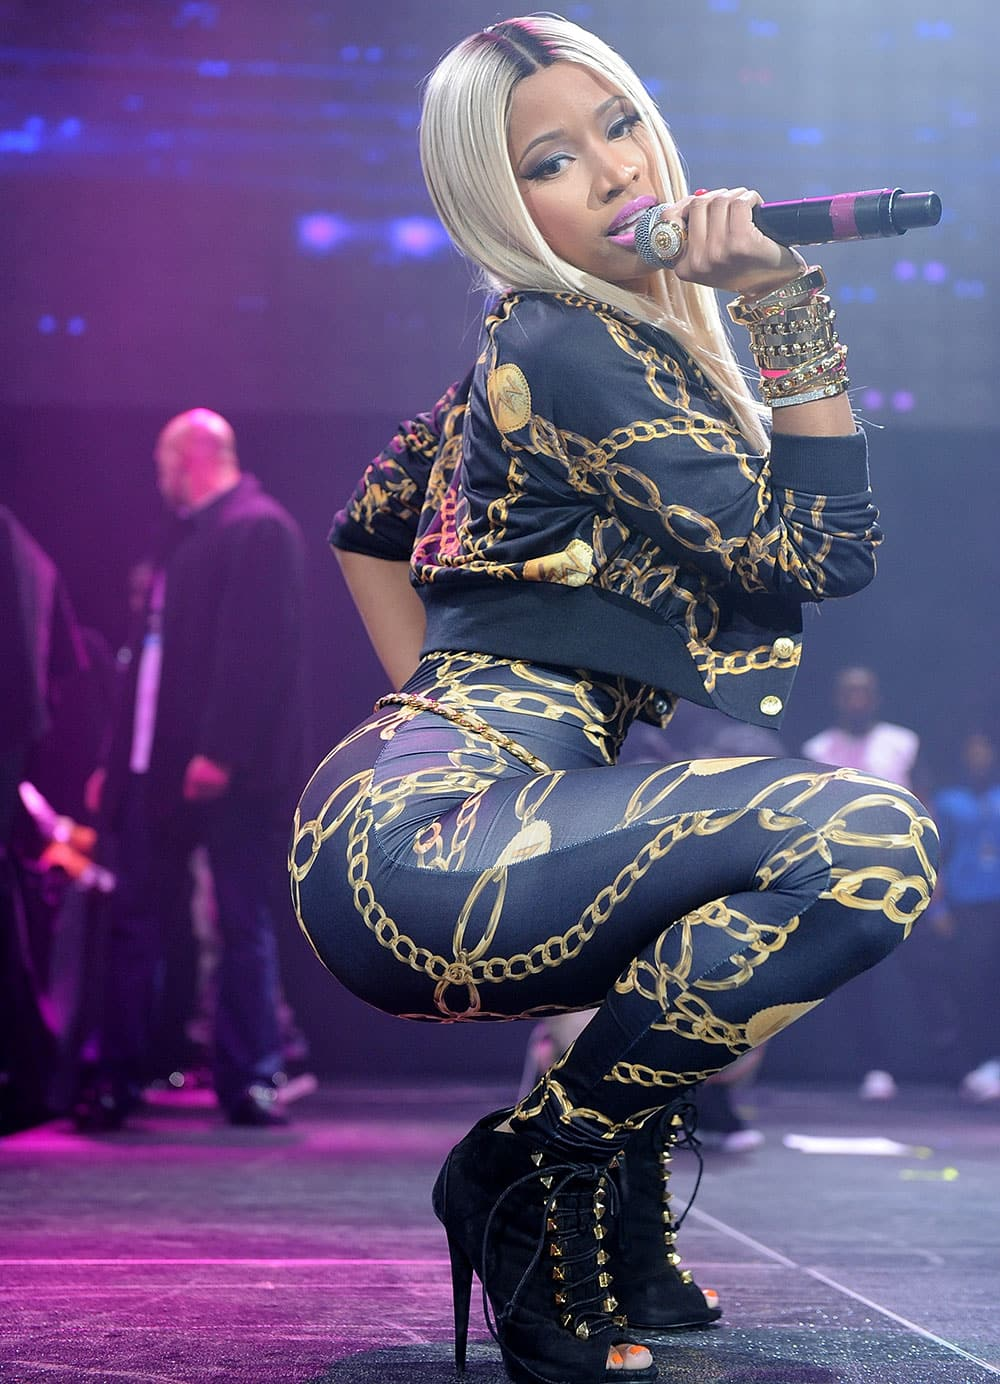 Hip-hop artist Nicki Minaj performs onstage at the Power 105.1's Powerhouse Concert at the Barclays Center, in New York's borough of Brooklyn.